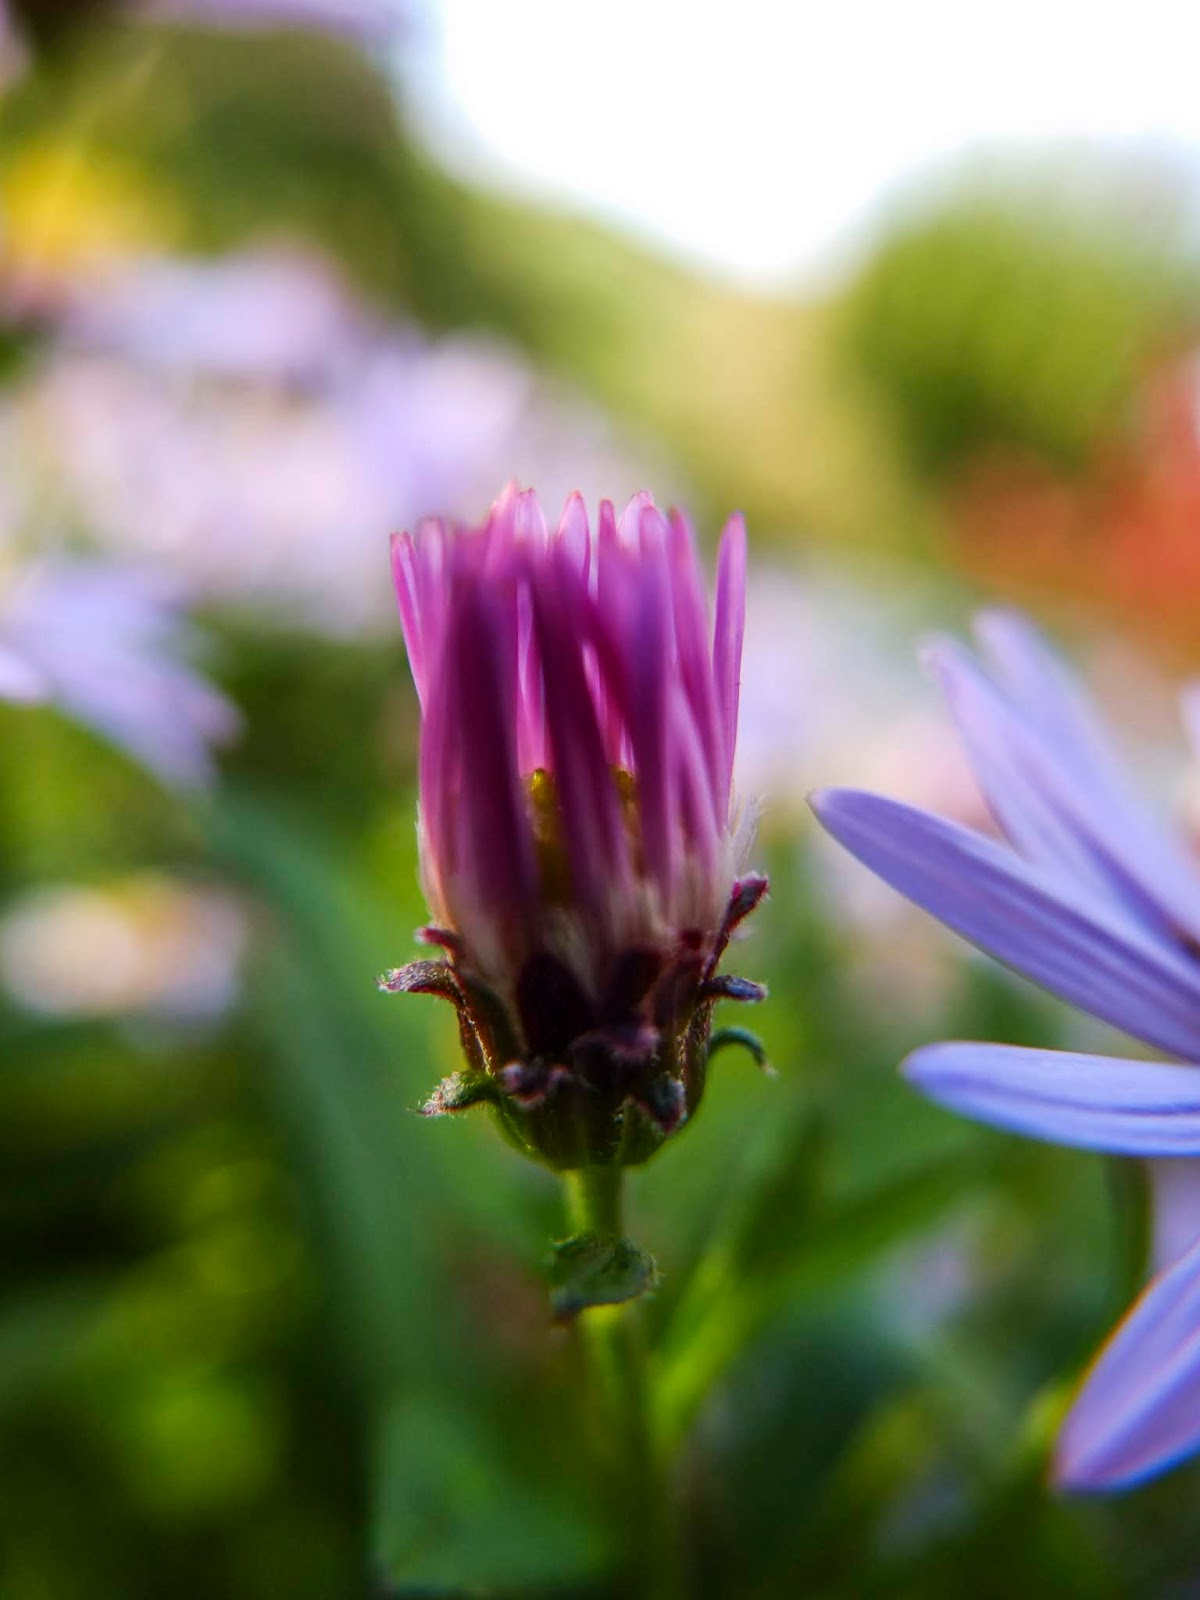 A macro image of a pink Aster flower bud.